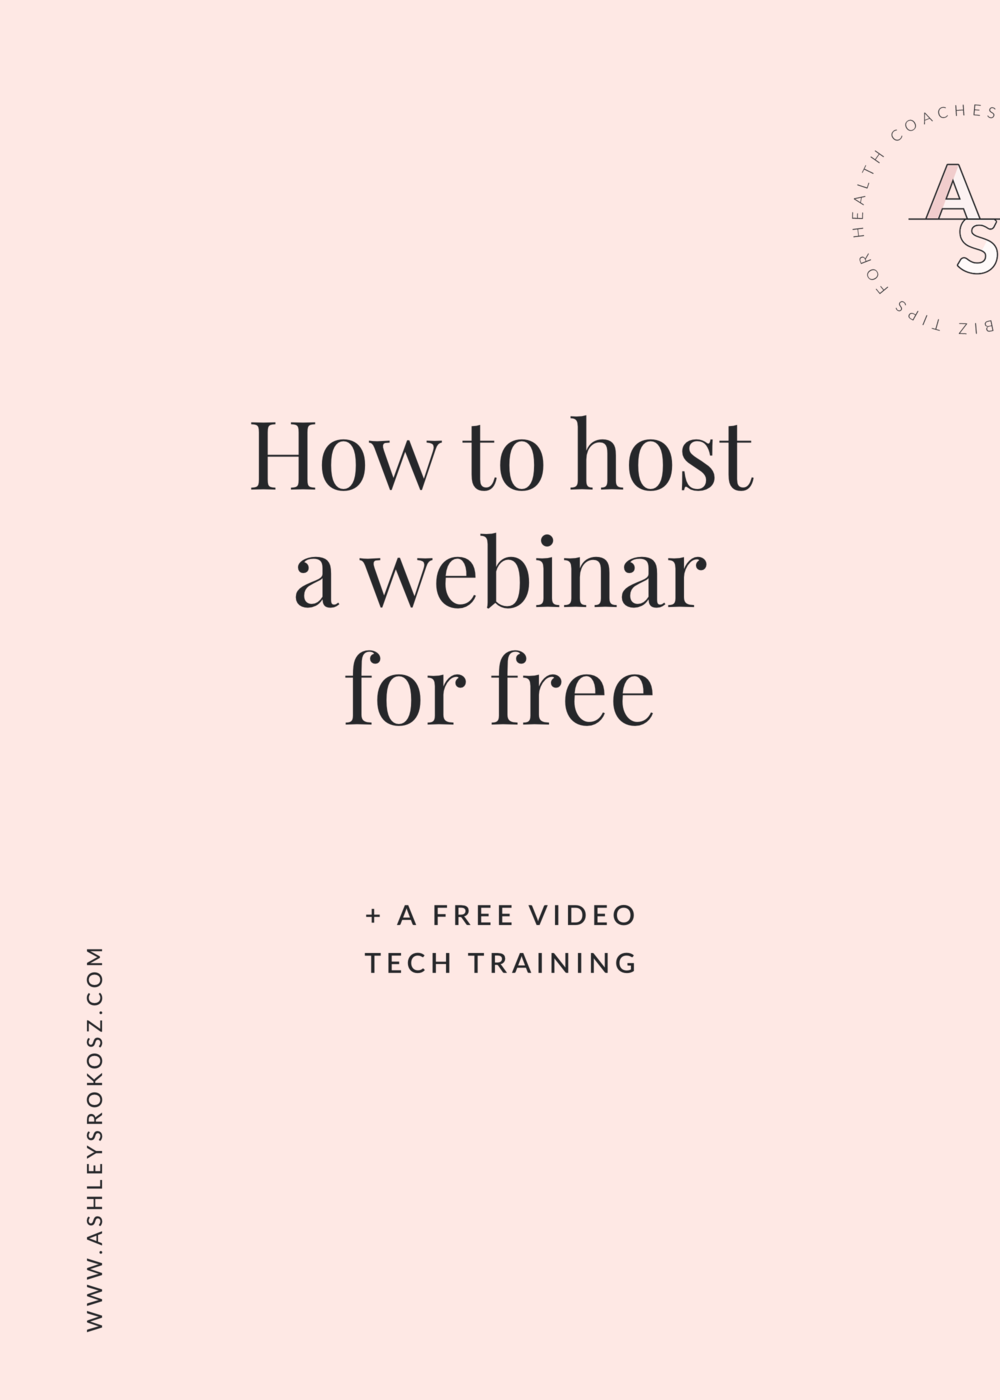 Are you a holistic nutritionist, health coach, yoga teacher, or essential oil advocate who wants to start using webinars to grow your business ... but have no idea how? Click here to learn how to host a webinar for free PLUS some free video tech training to get you over your tech fears. Webinars can grow your email and client lists super fast and help you spread your mission farther than you ever thought possible!